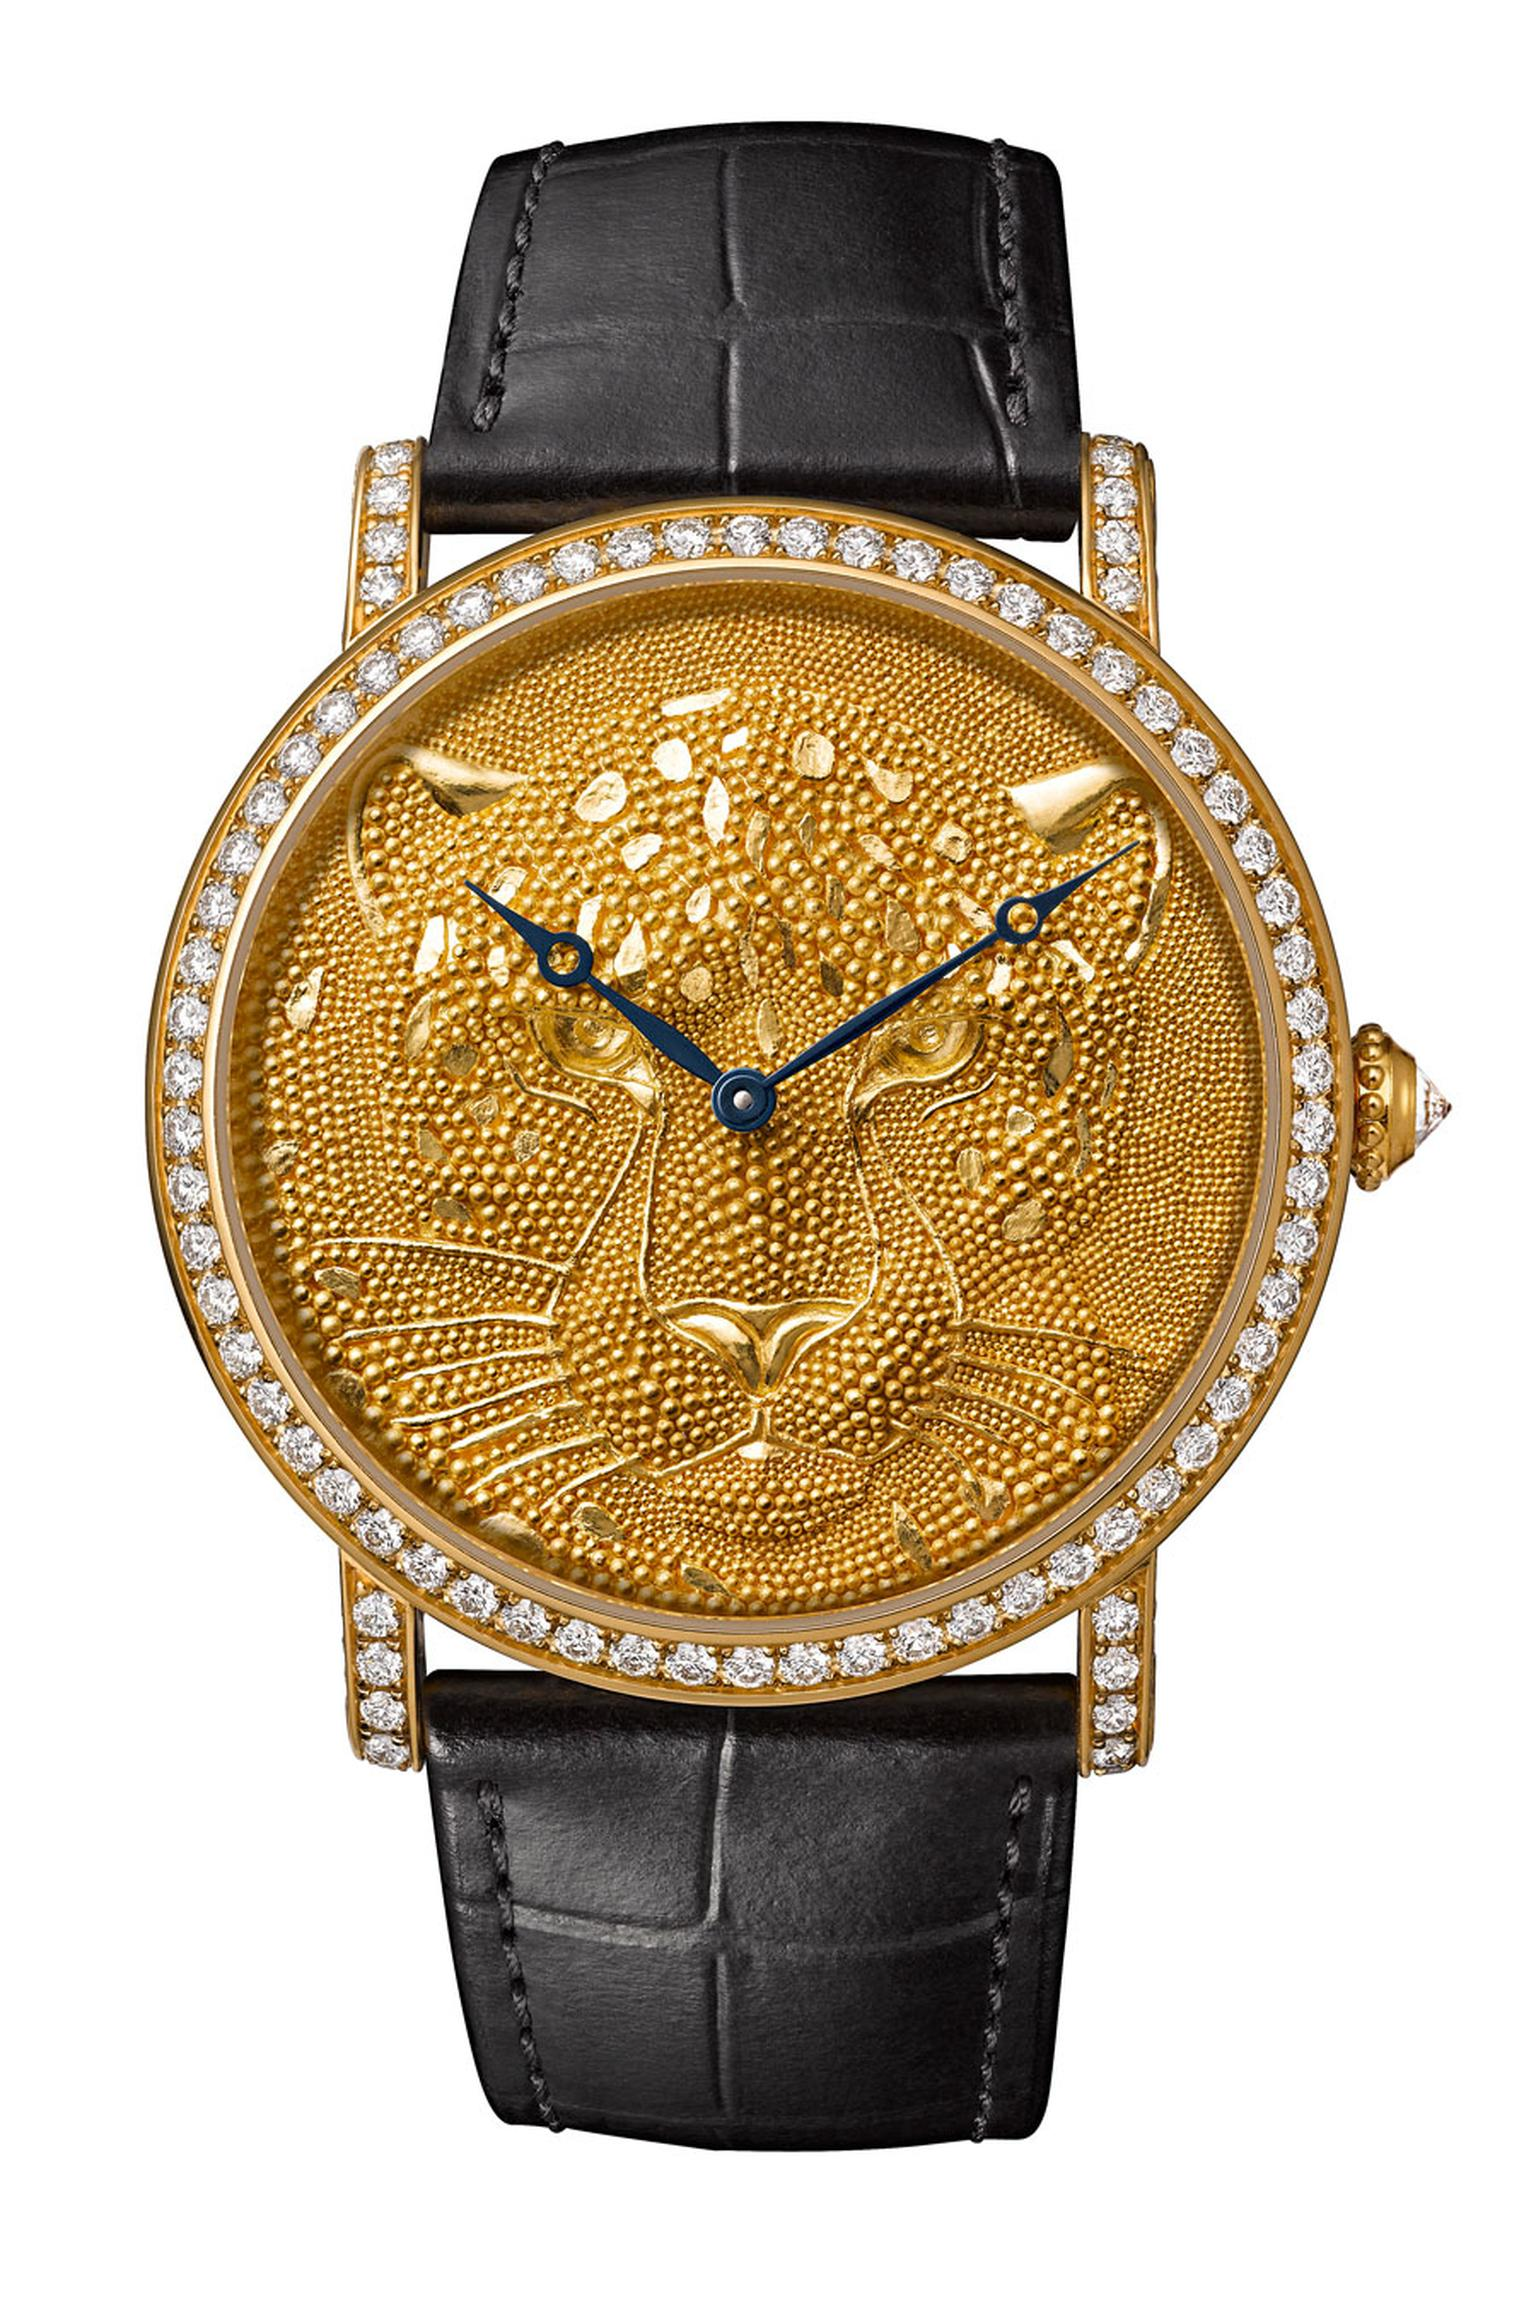 Cartier-Panthere-Watch-29643.jpg